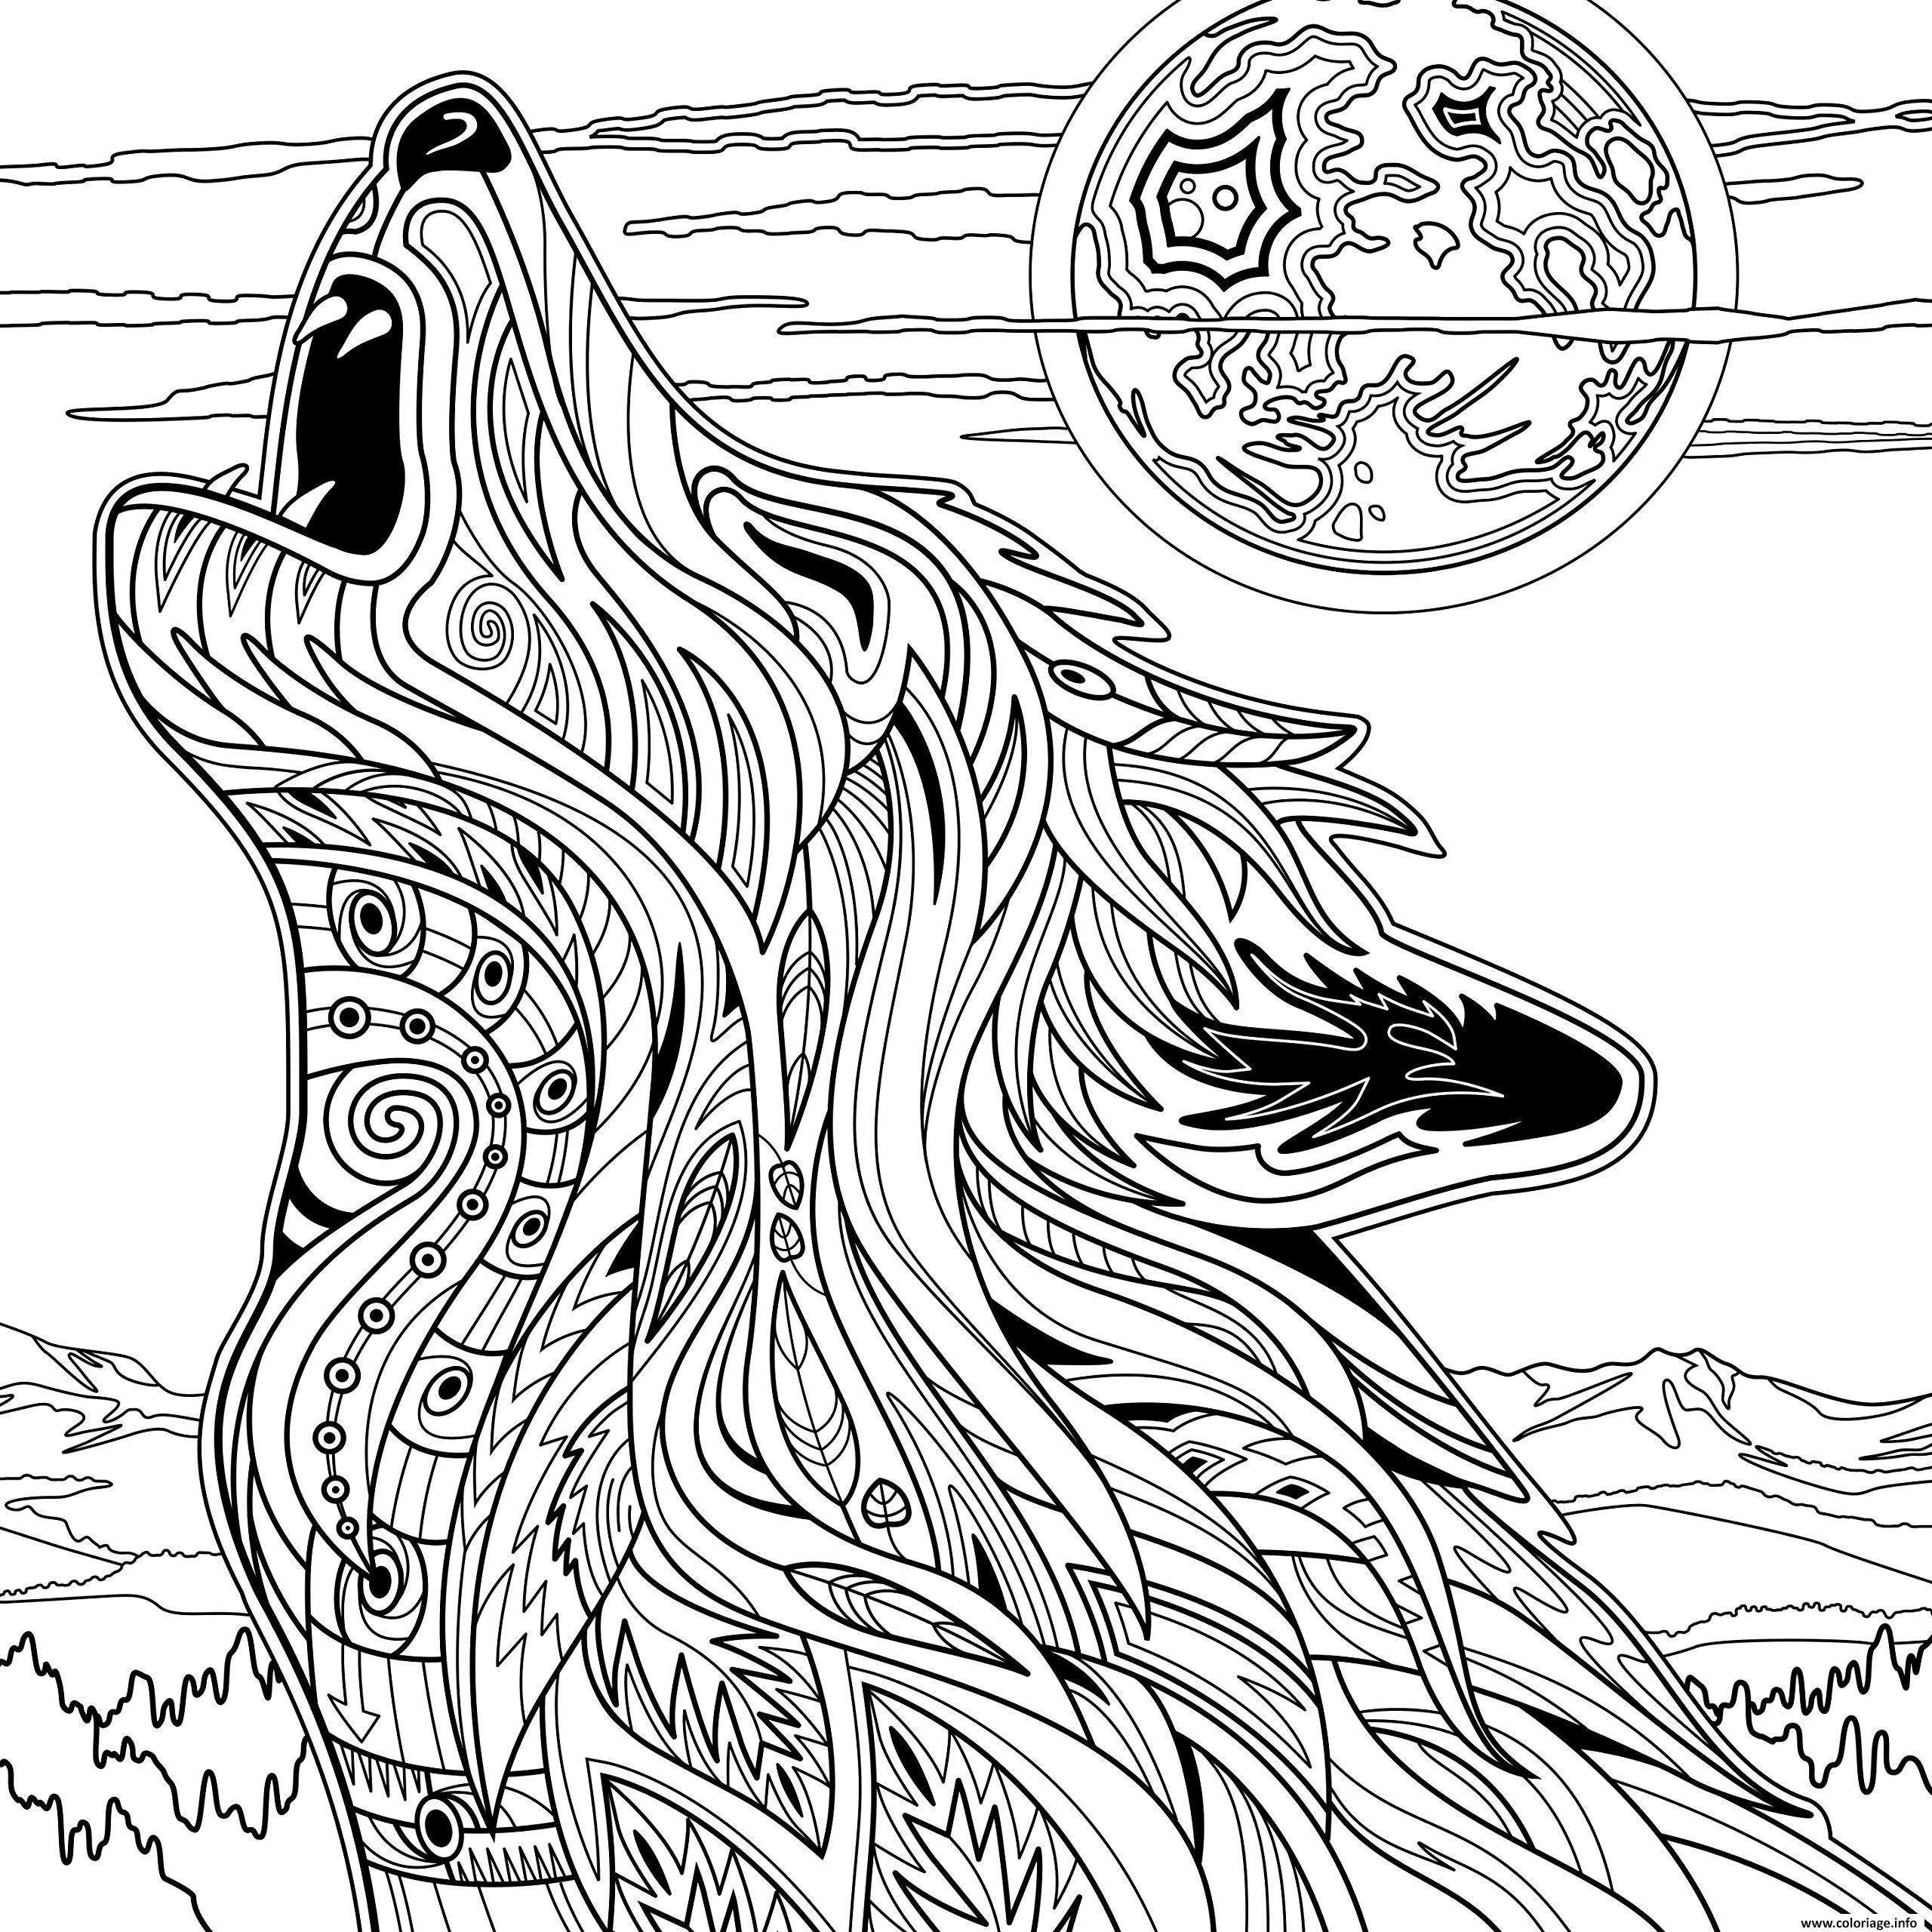 Coloriage adulte loup animaux yellowstone national park - Dessin de loup a imprimer ...